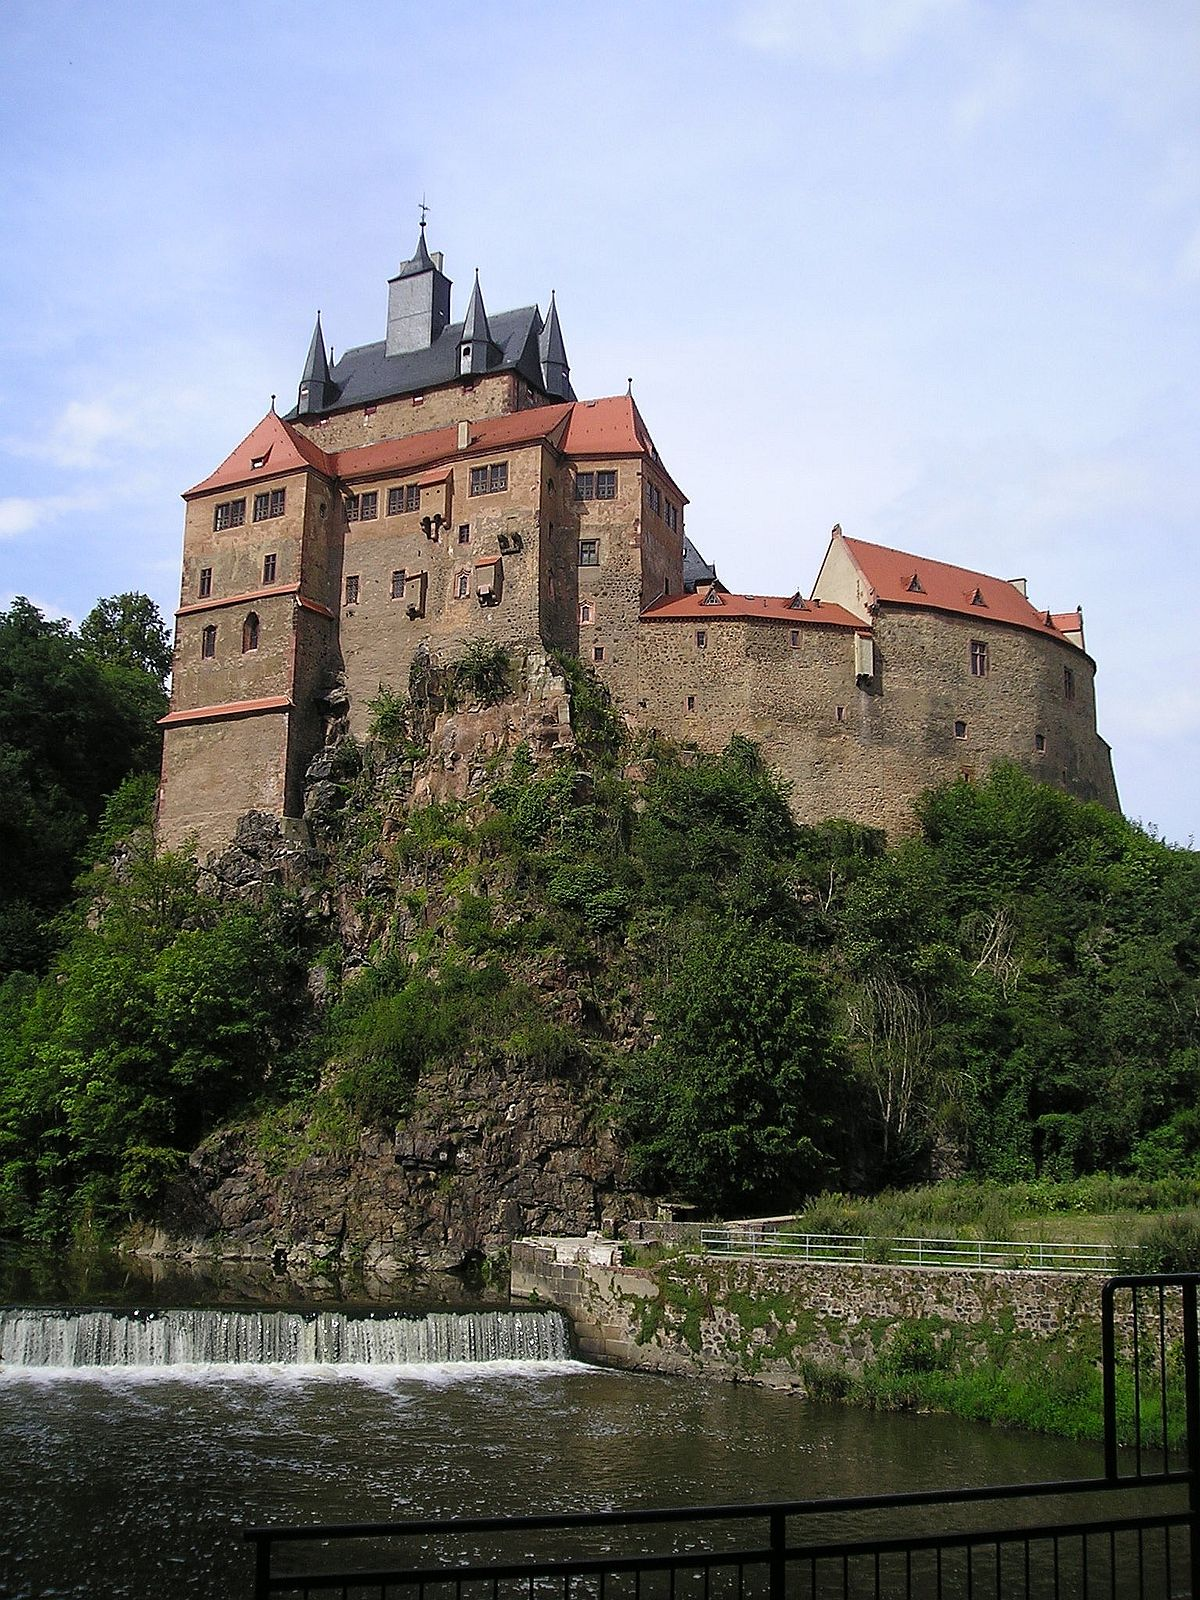 State Palaces, Castles and Gardens of Saxony - Wikipedia